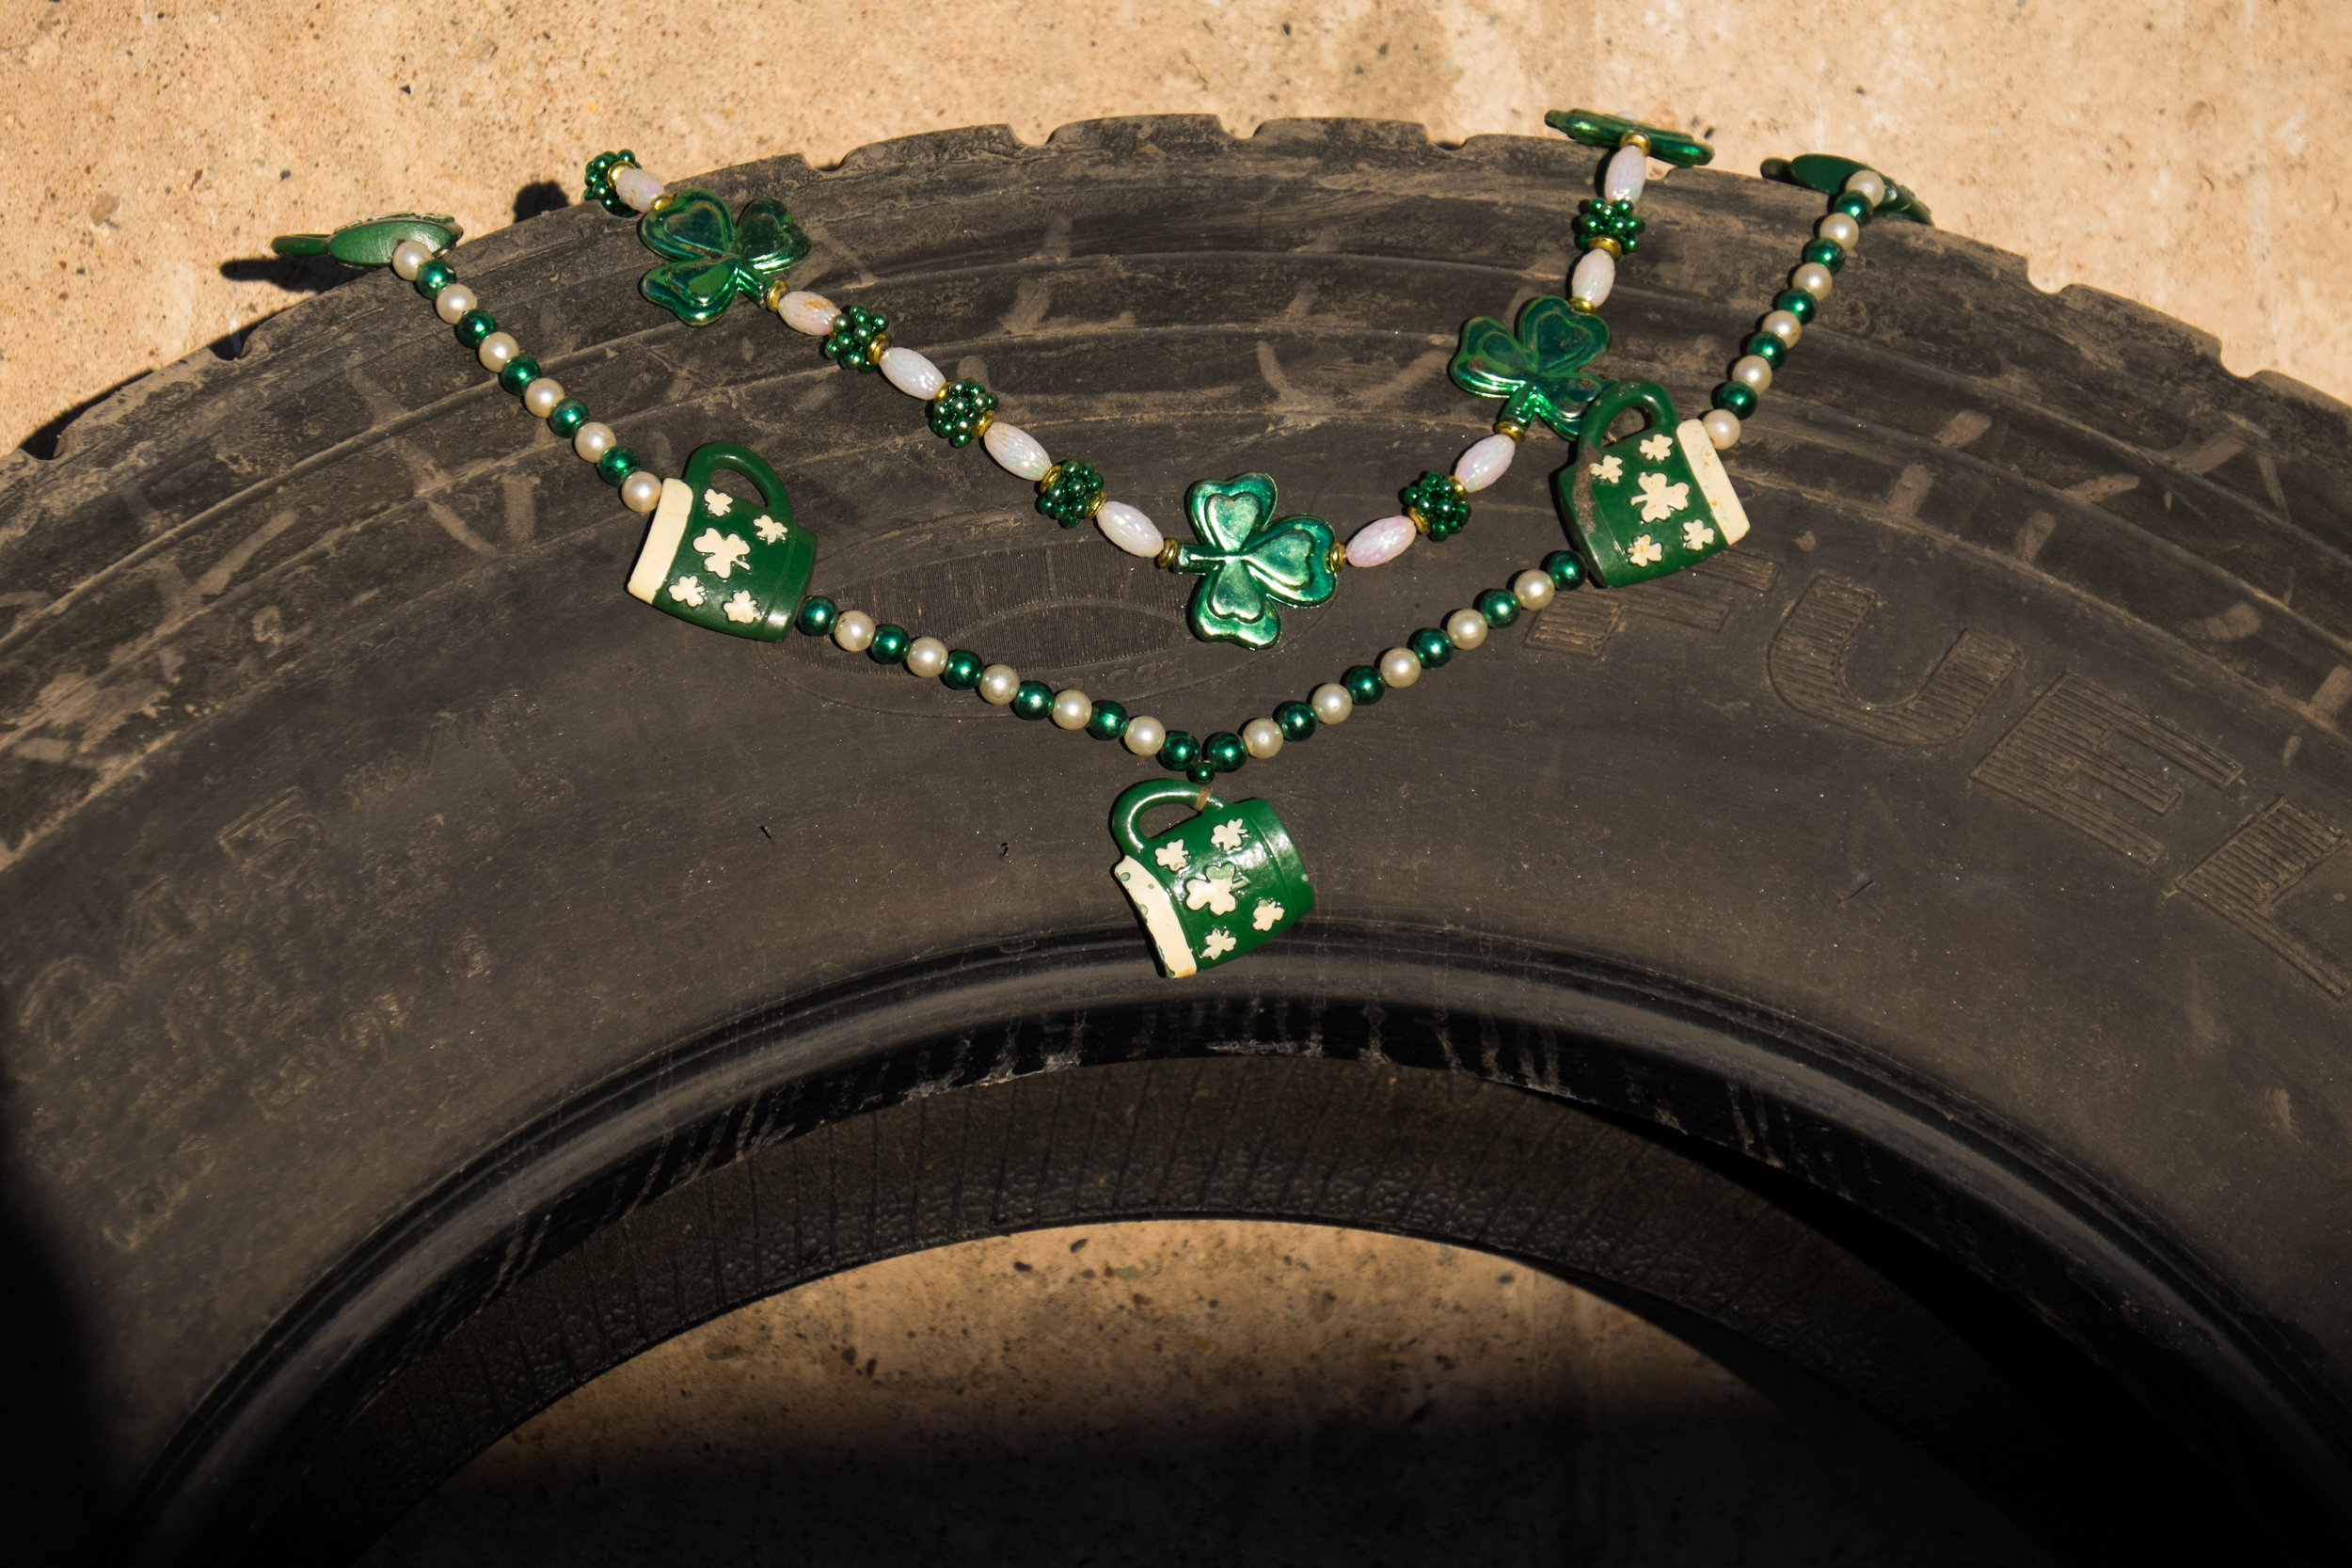 6.The Saint Patrick's Day Necklaces.jpg